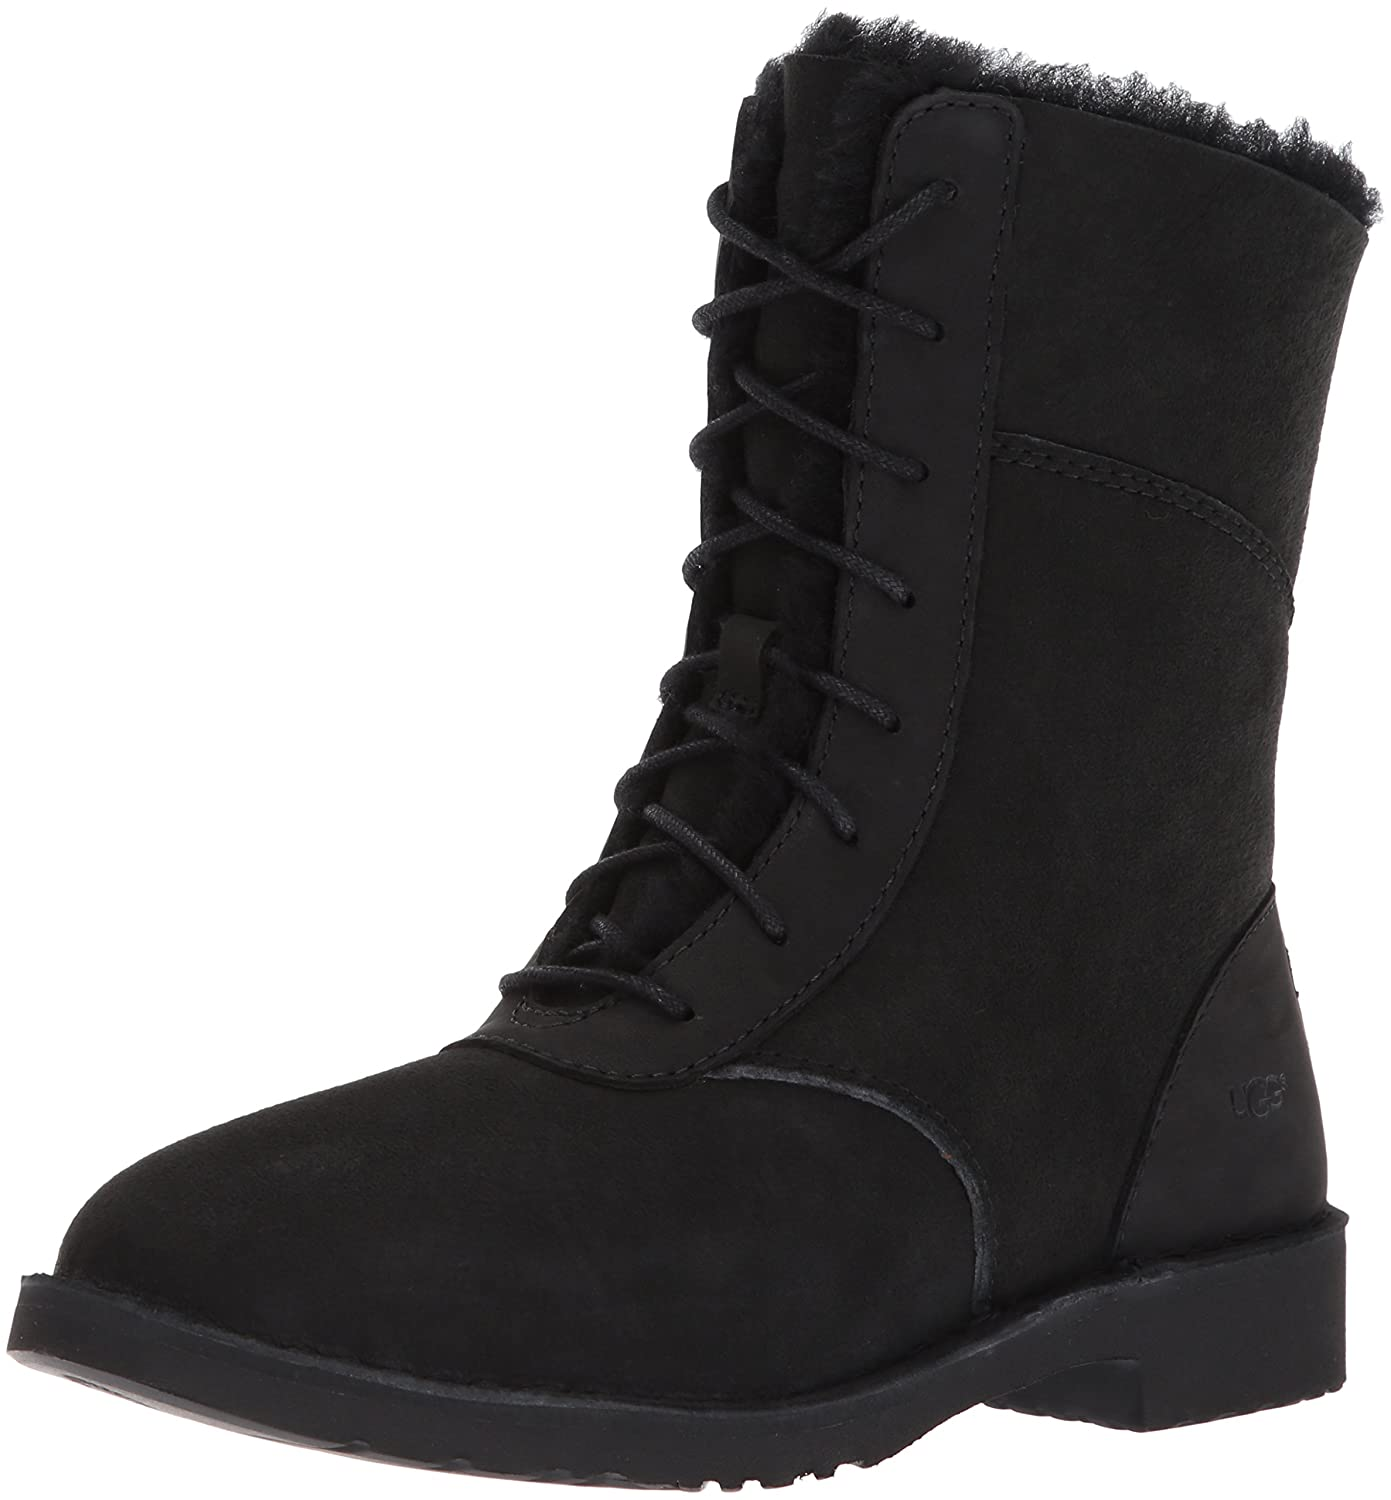 c7462f66cba UGG Women's Daney Boot, Black, 5.5 M US: Amazon.co.uk: Shoes & Bags